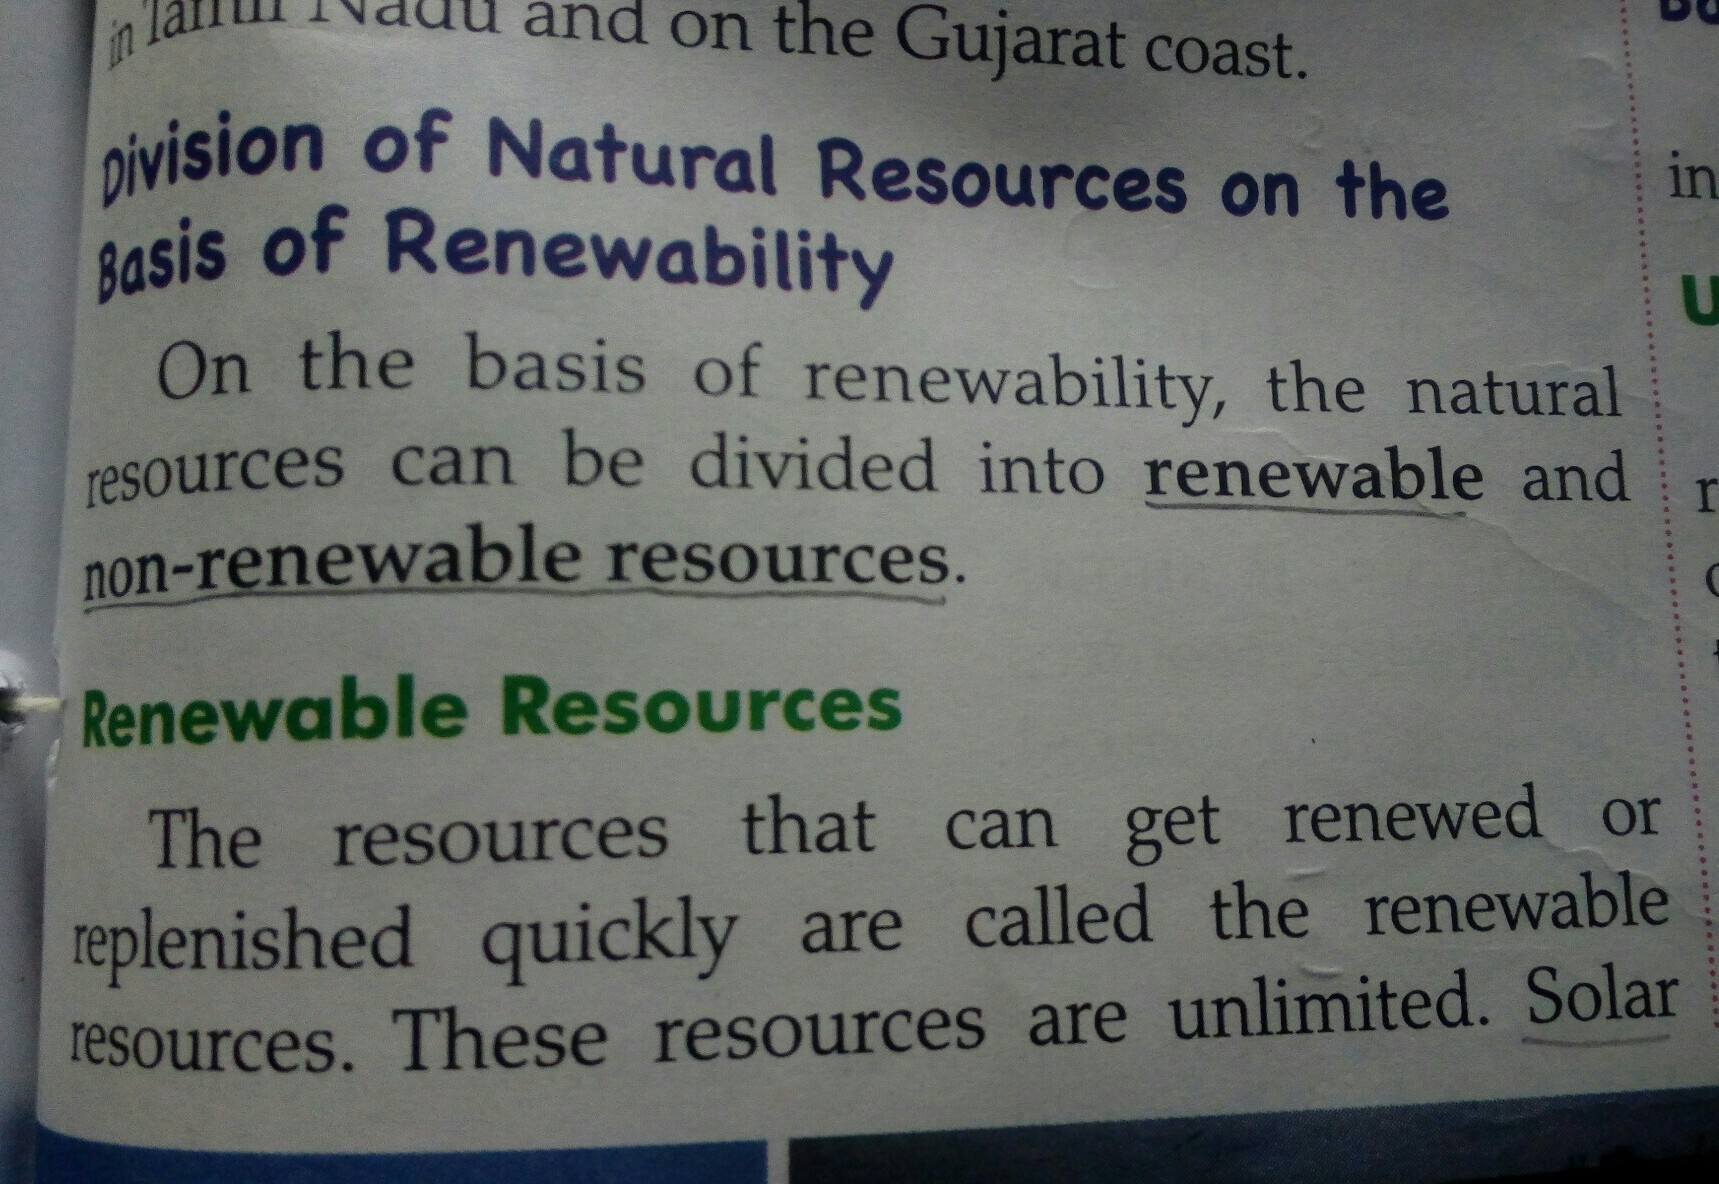 example of renewable resources and nonrenewable resources in detail